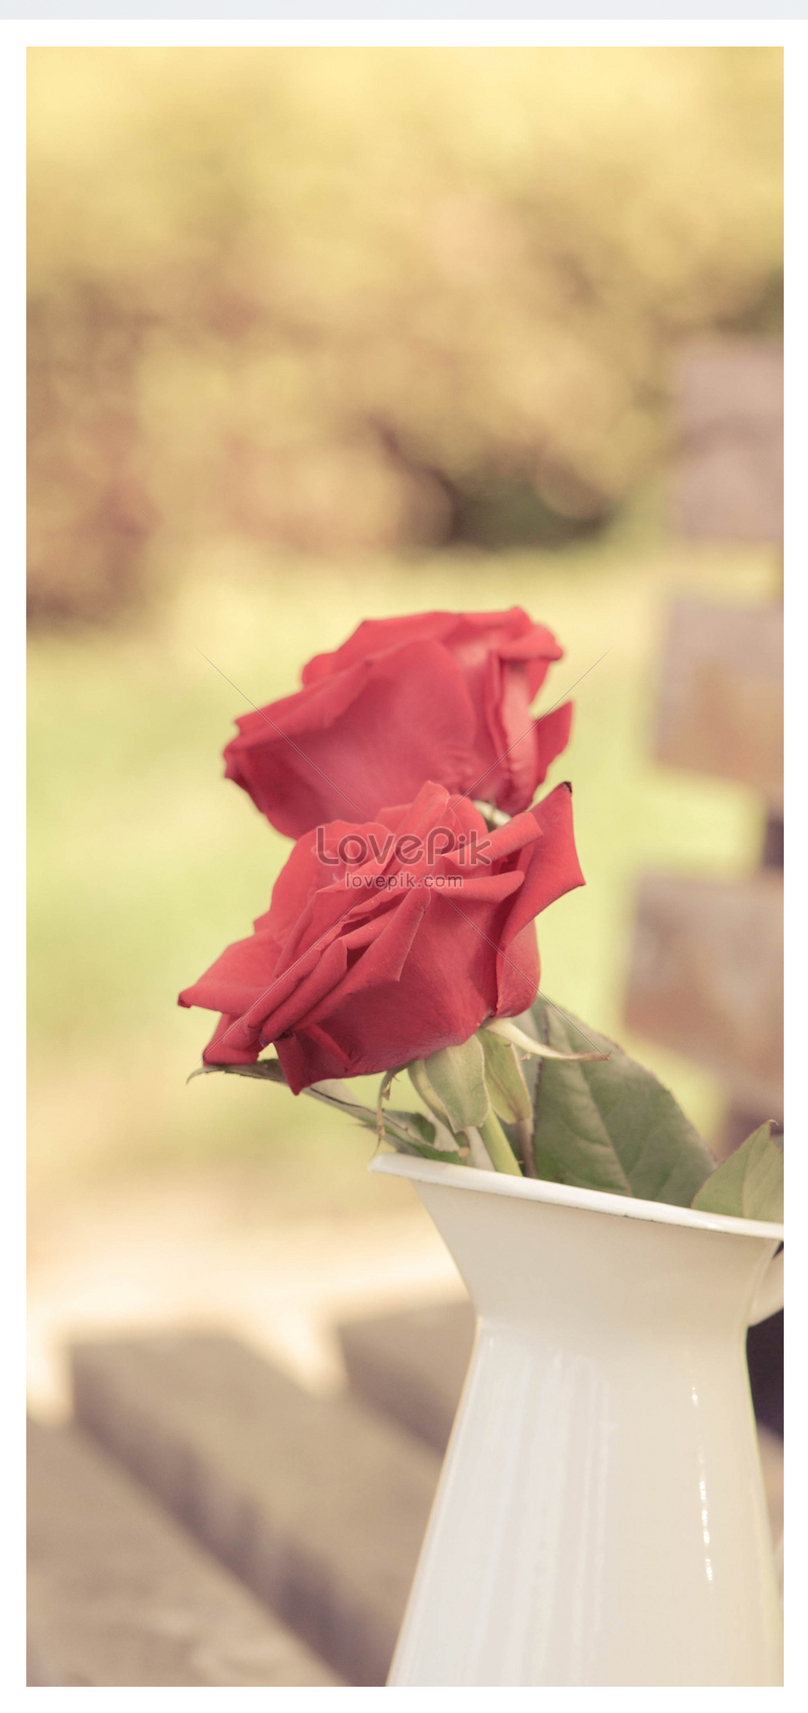 red rose mobile wallpaper backgrounds image picture free download